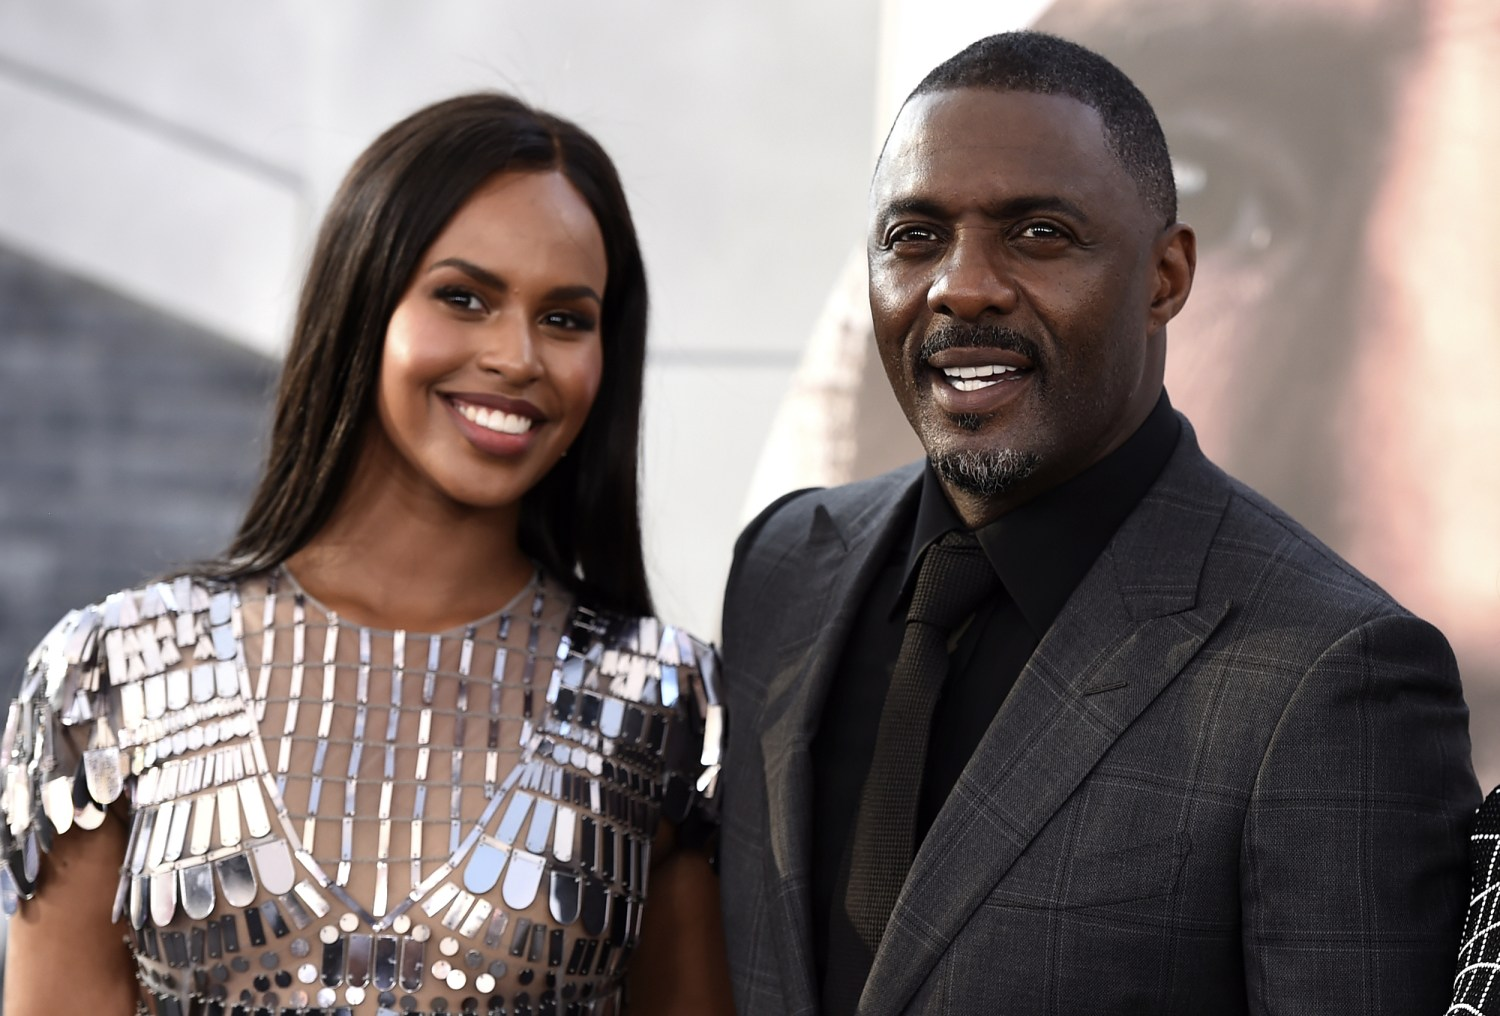 Fans Take To Social Media After Idris Elba's PDA With His Wife